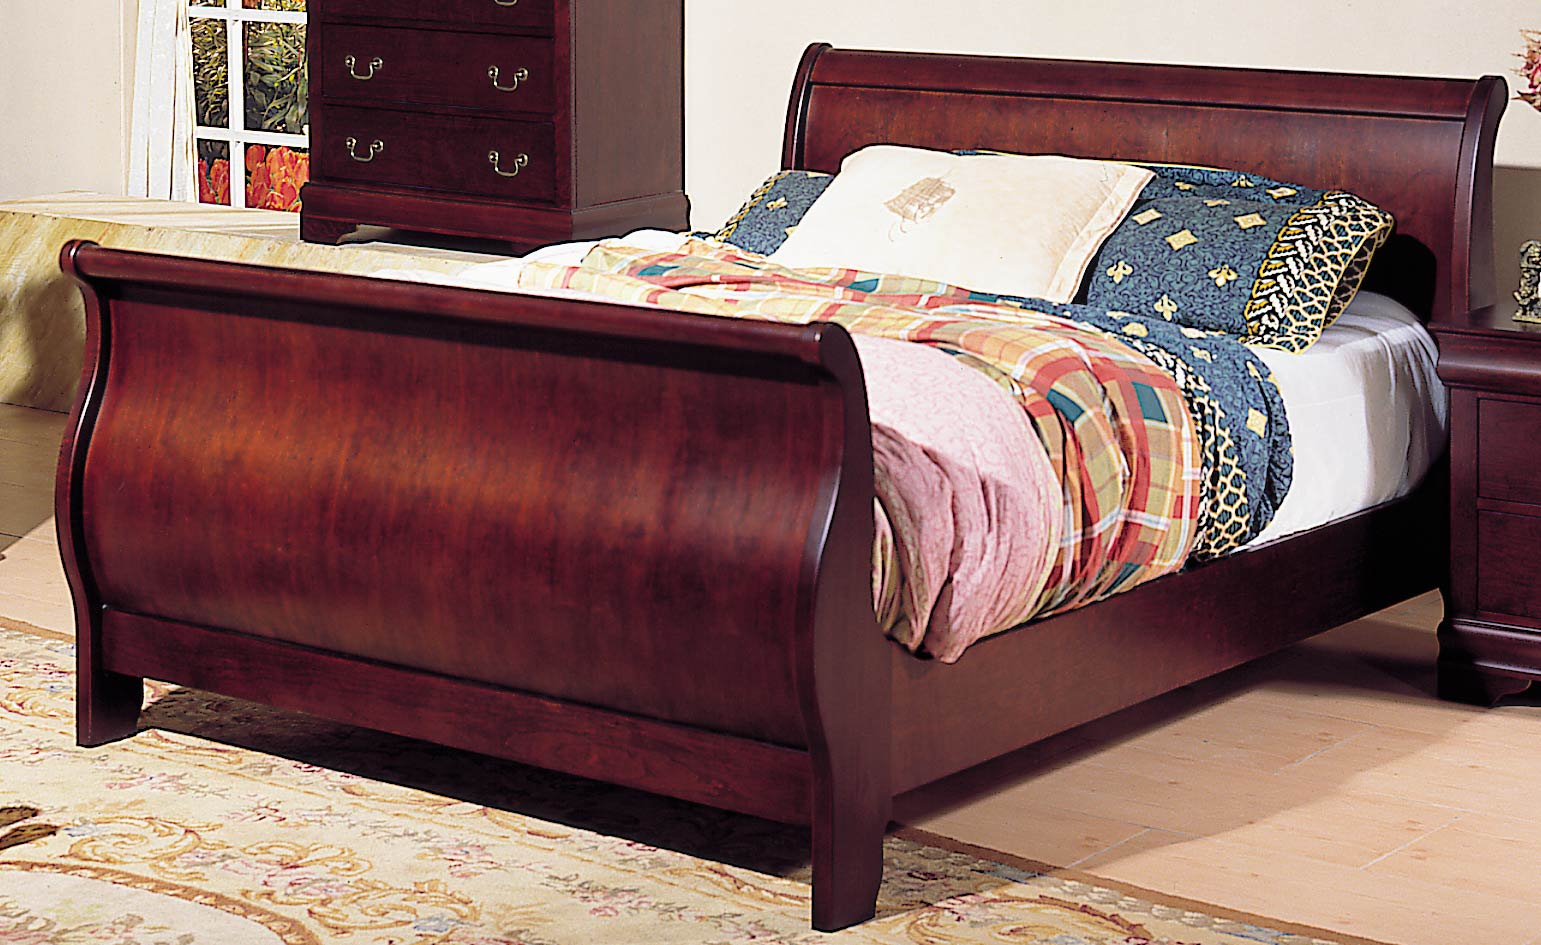 Pottery Barn Sleigh Bed | Quilted Headboard Bedroom Sets | Headboards for Full Size Beds